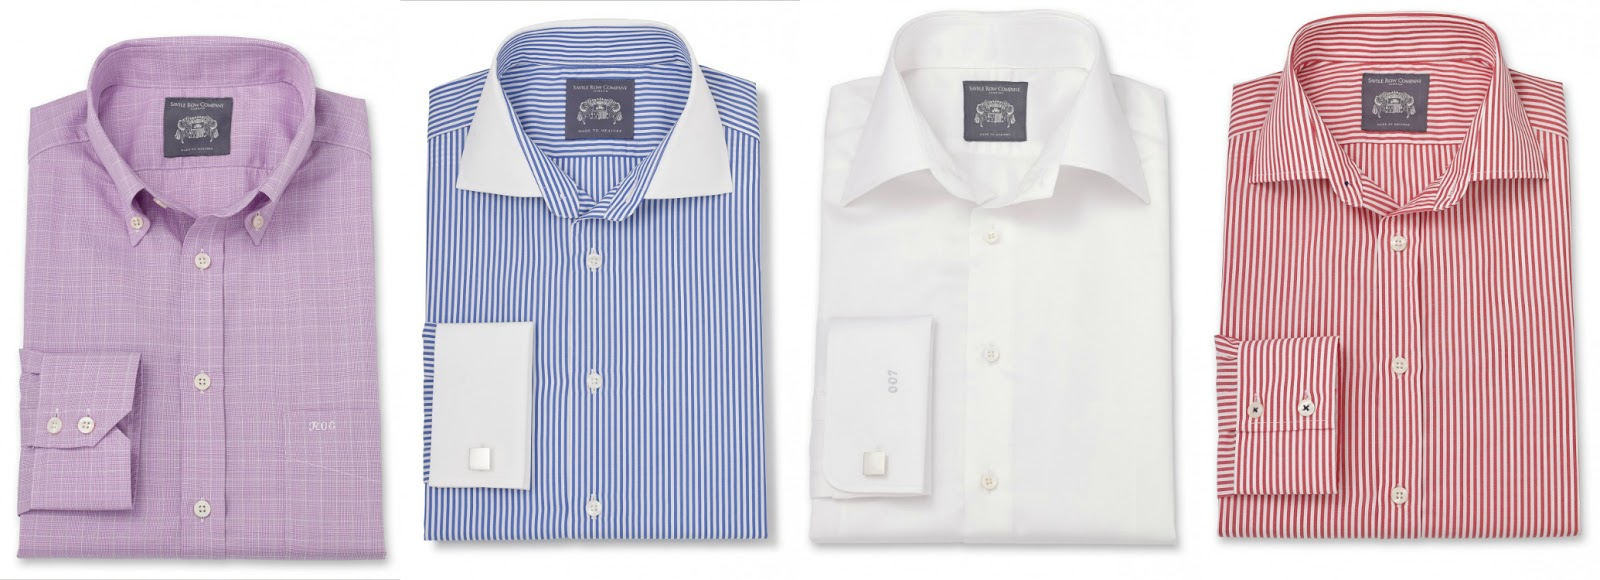 Made To Measure Shirts With The Savile Row Company That